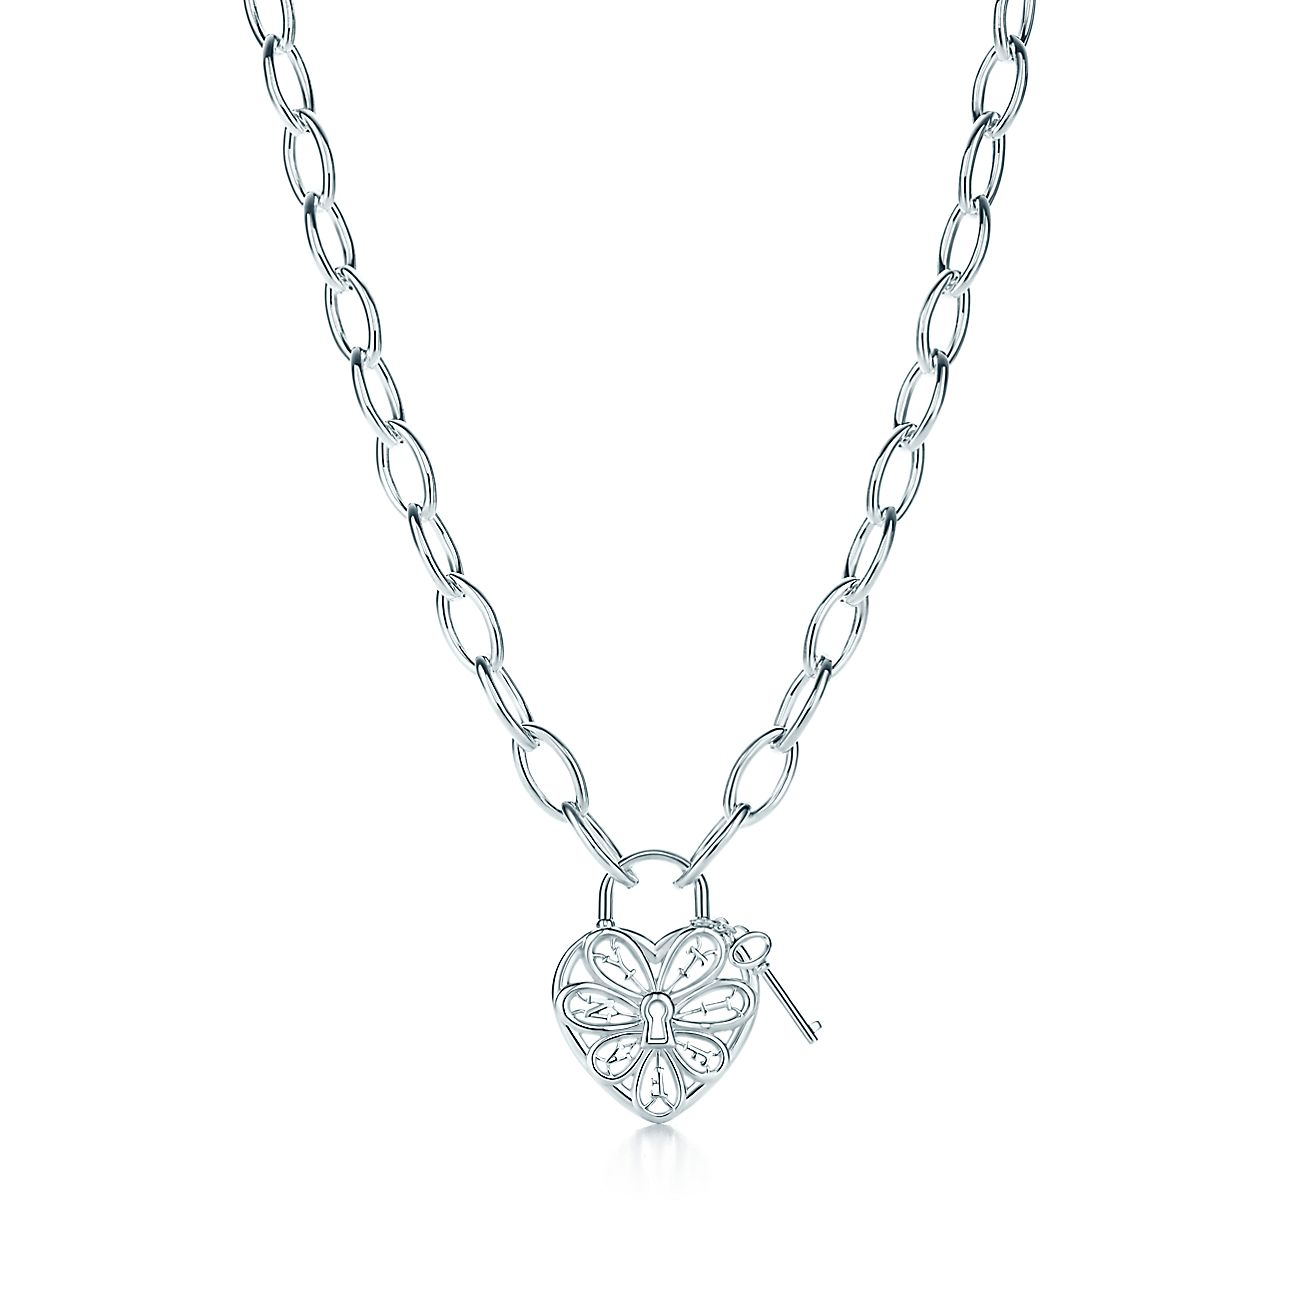 Tiffany Filigree Heart necklace with key in sterling